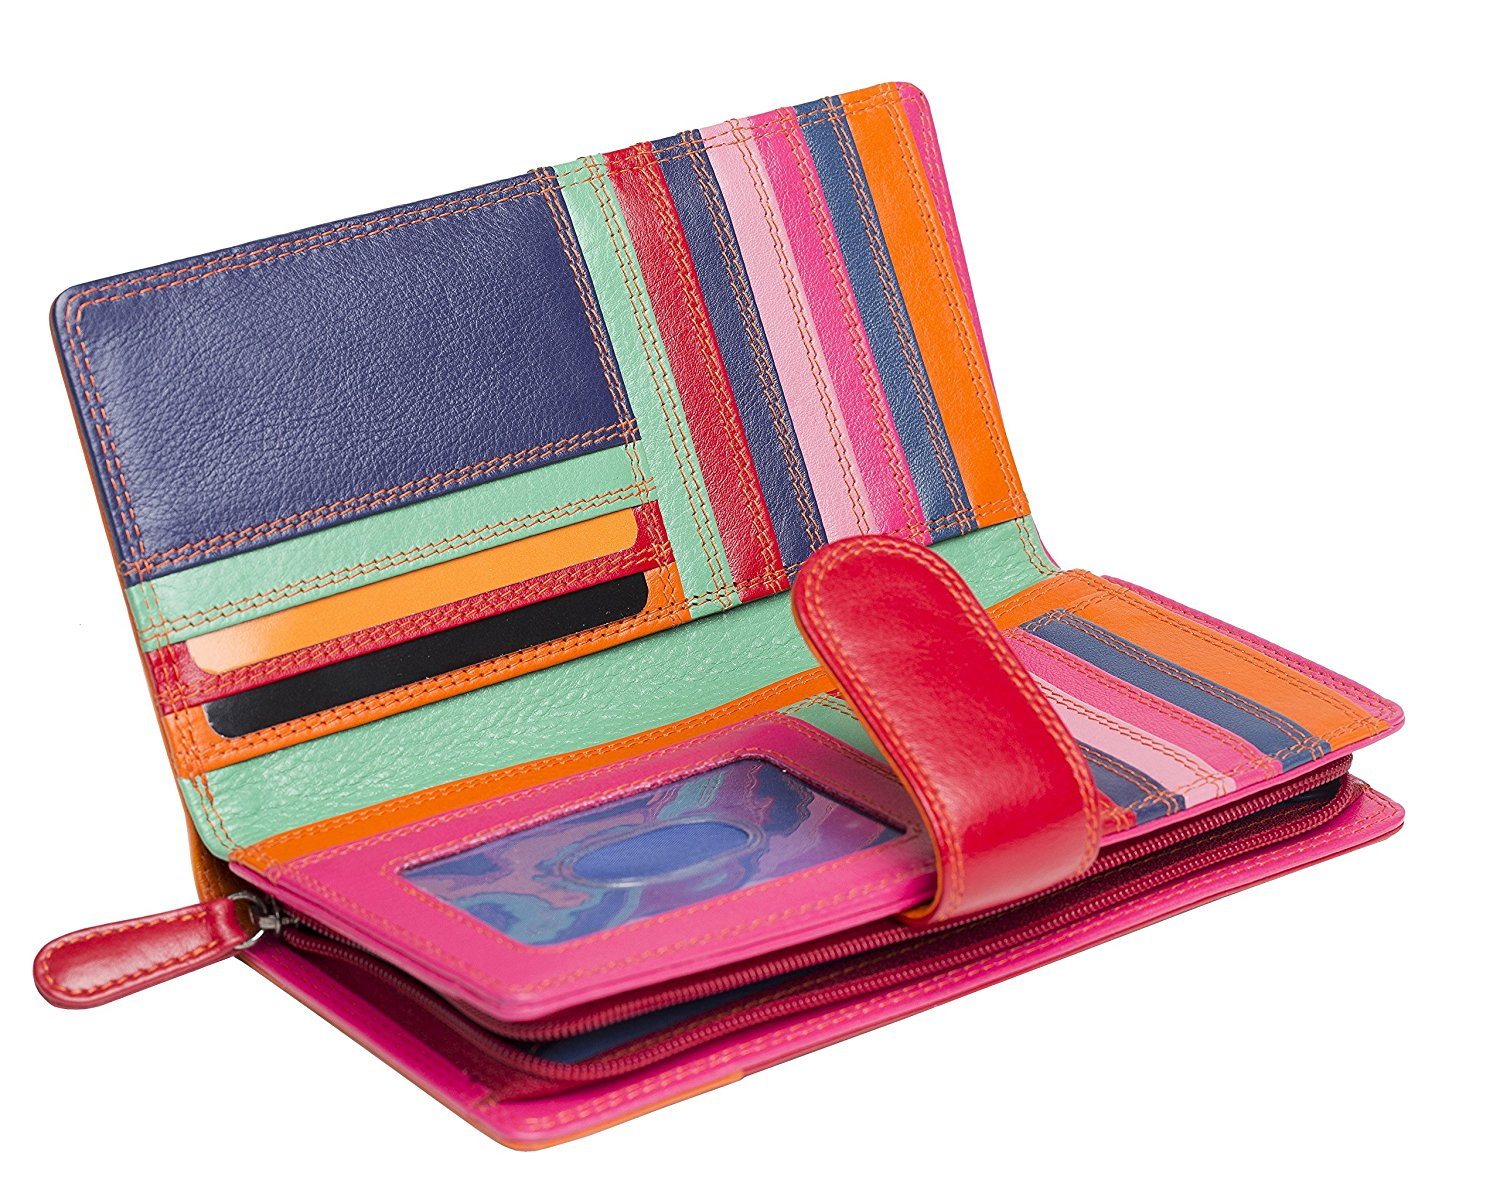 Femme-Luxe-Multi-couleur-cuir-grand-sac-a-main-RFID-Bloquant-violet-rouge miniature 8